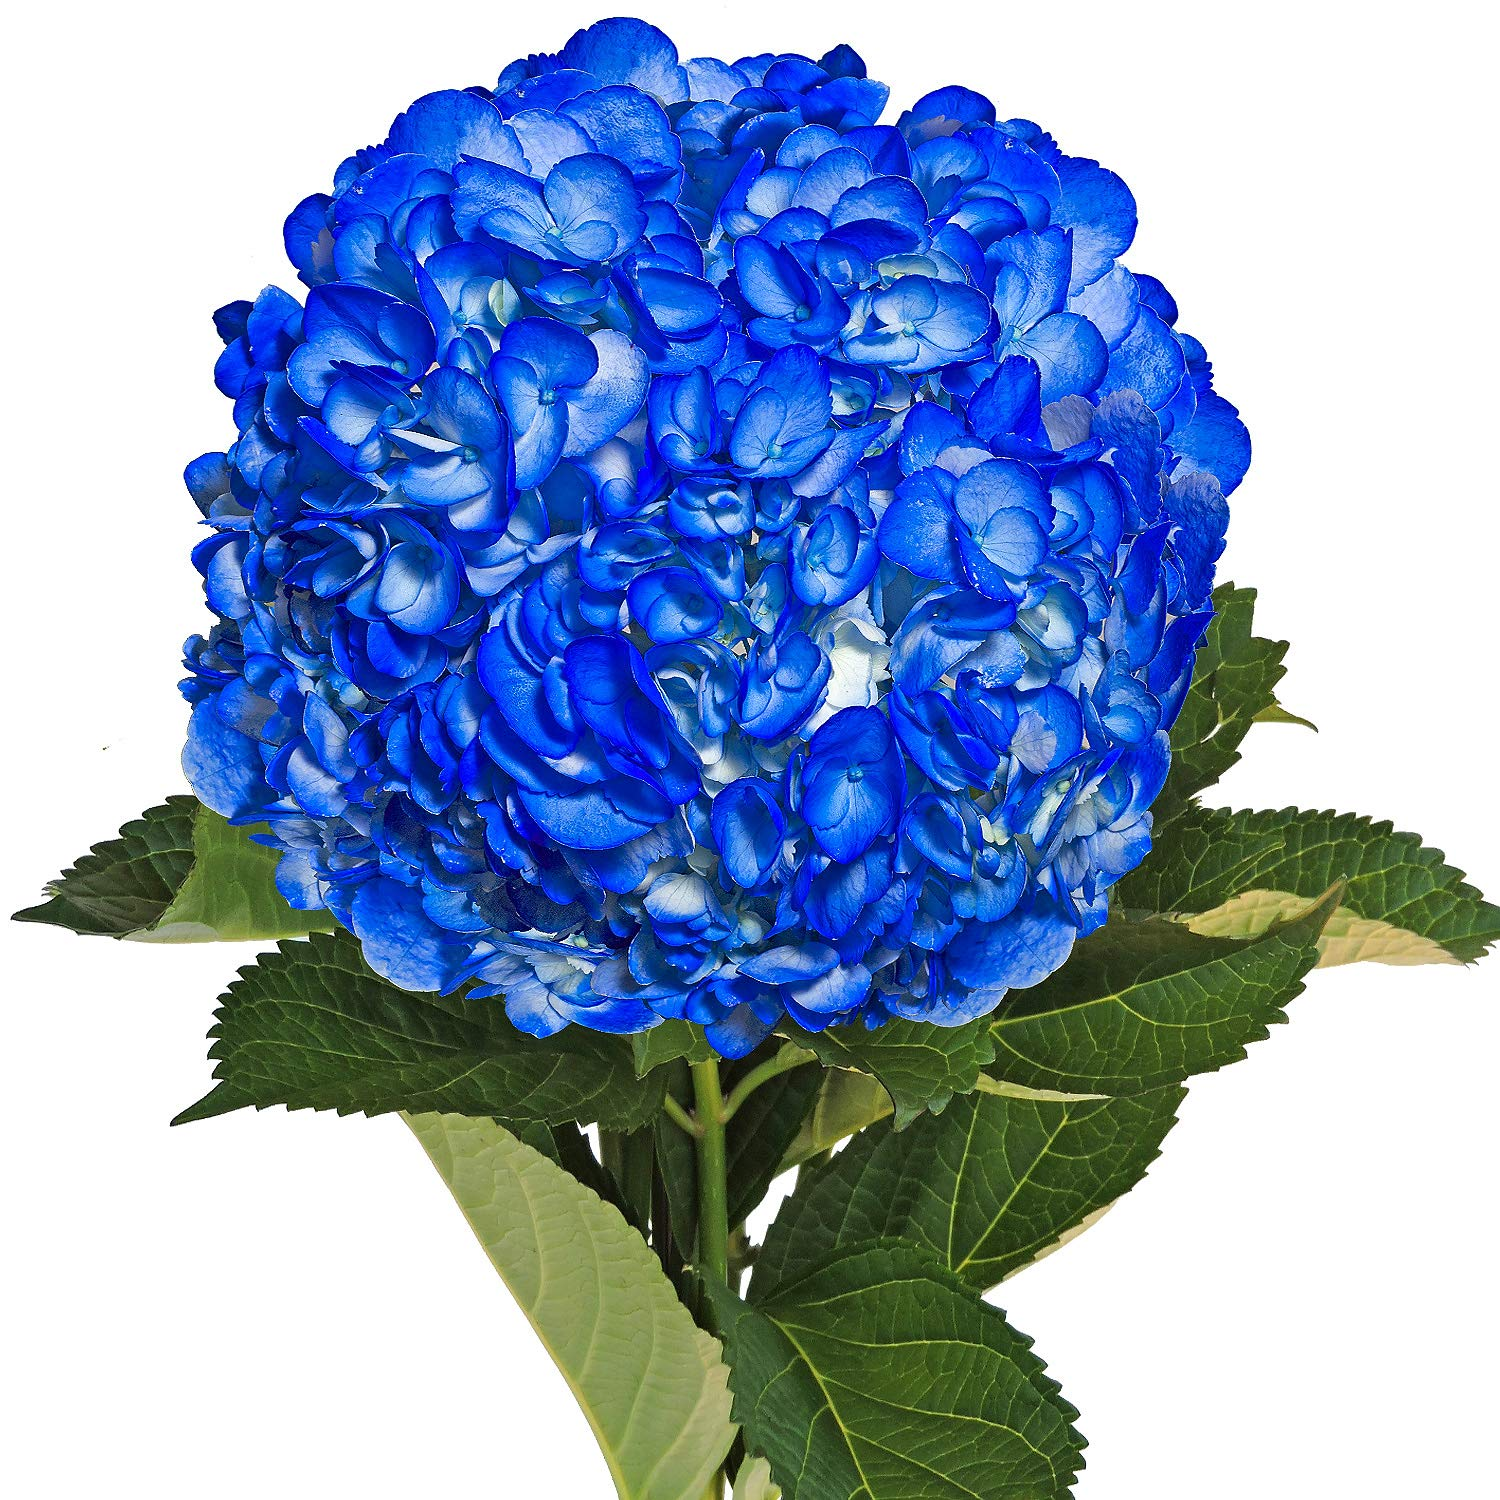 Farm Fresh Natural Painted Dark Blue Hydrangea - Pack 15 by Bloomingmore (Image #1)